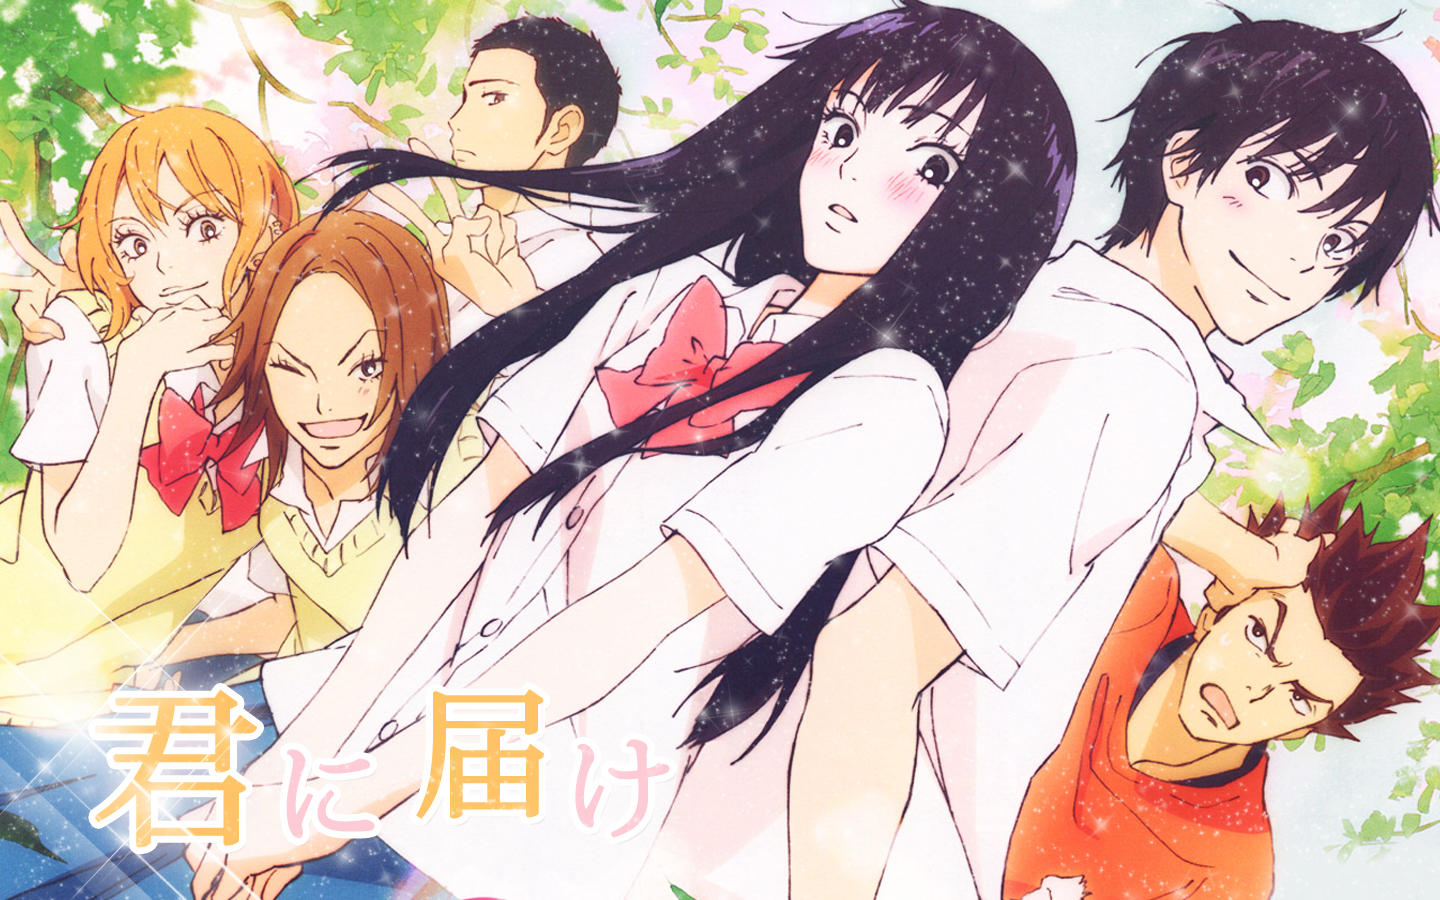 https://secure.static.tumblr.com/5c319cf425f79ac971e9e009ff6f05e6/qi5y1zg/w7in0k1kg/tumblr_static_minitokyo.kimi.ni.todoke.wallpaper.451295.jpg